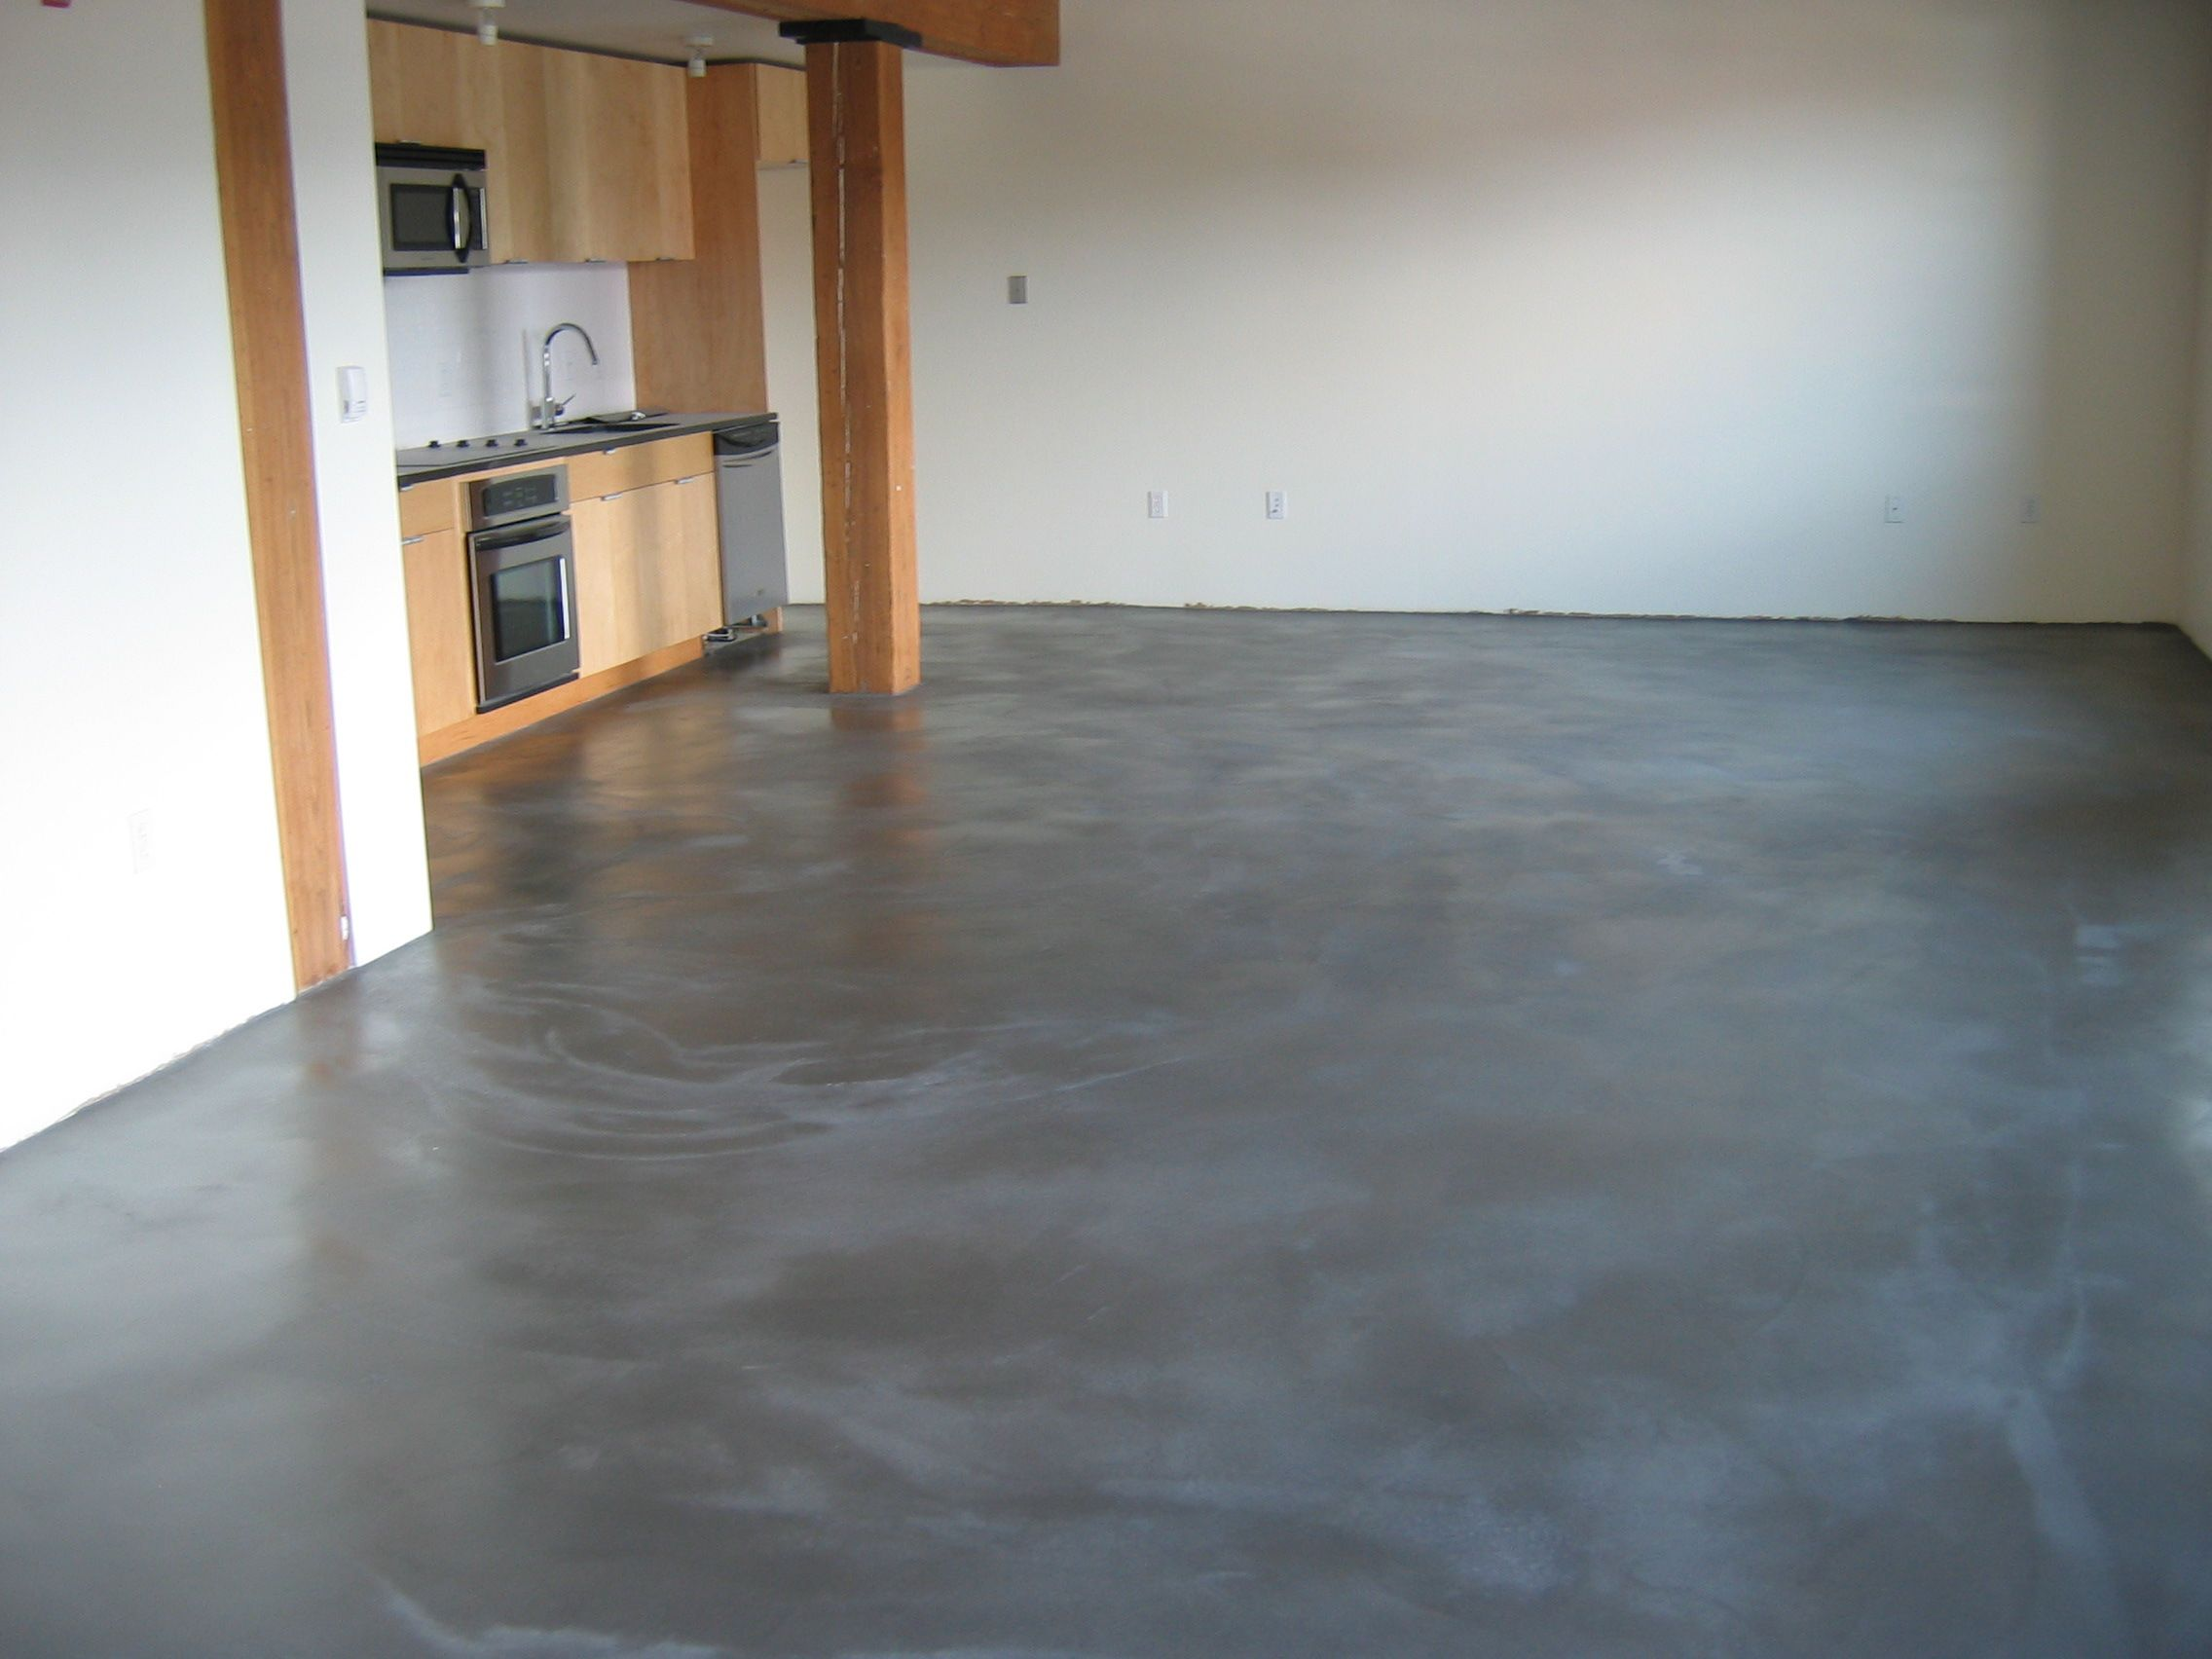 poured concrete floors | Concrete Polishing : Concrete Floor Experts ...